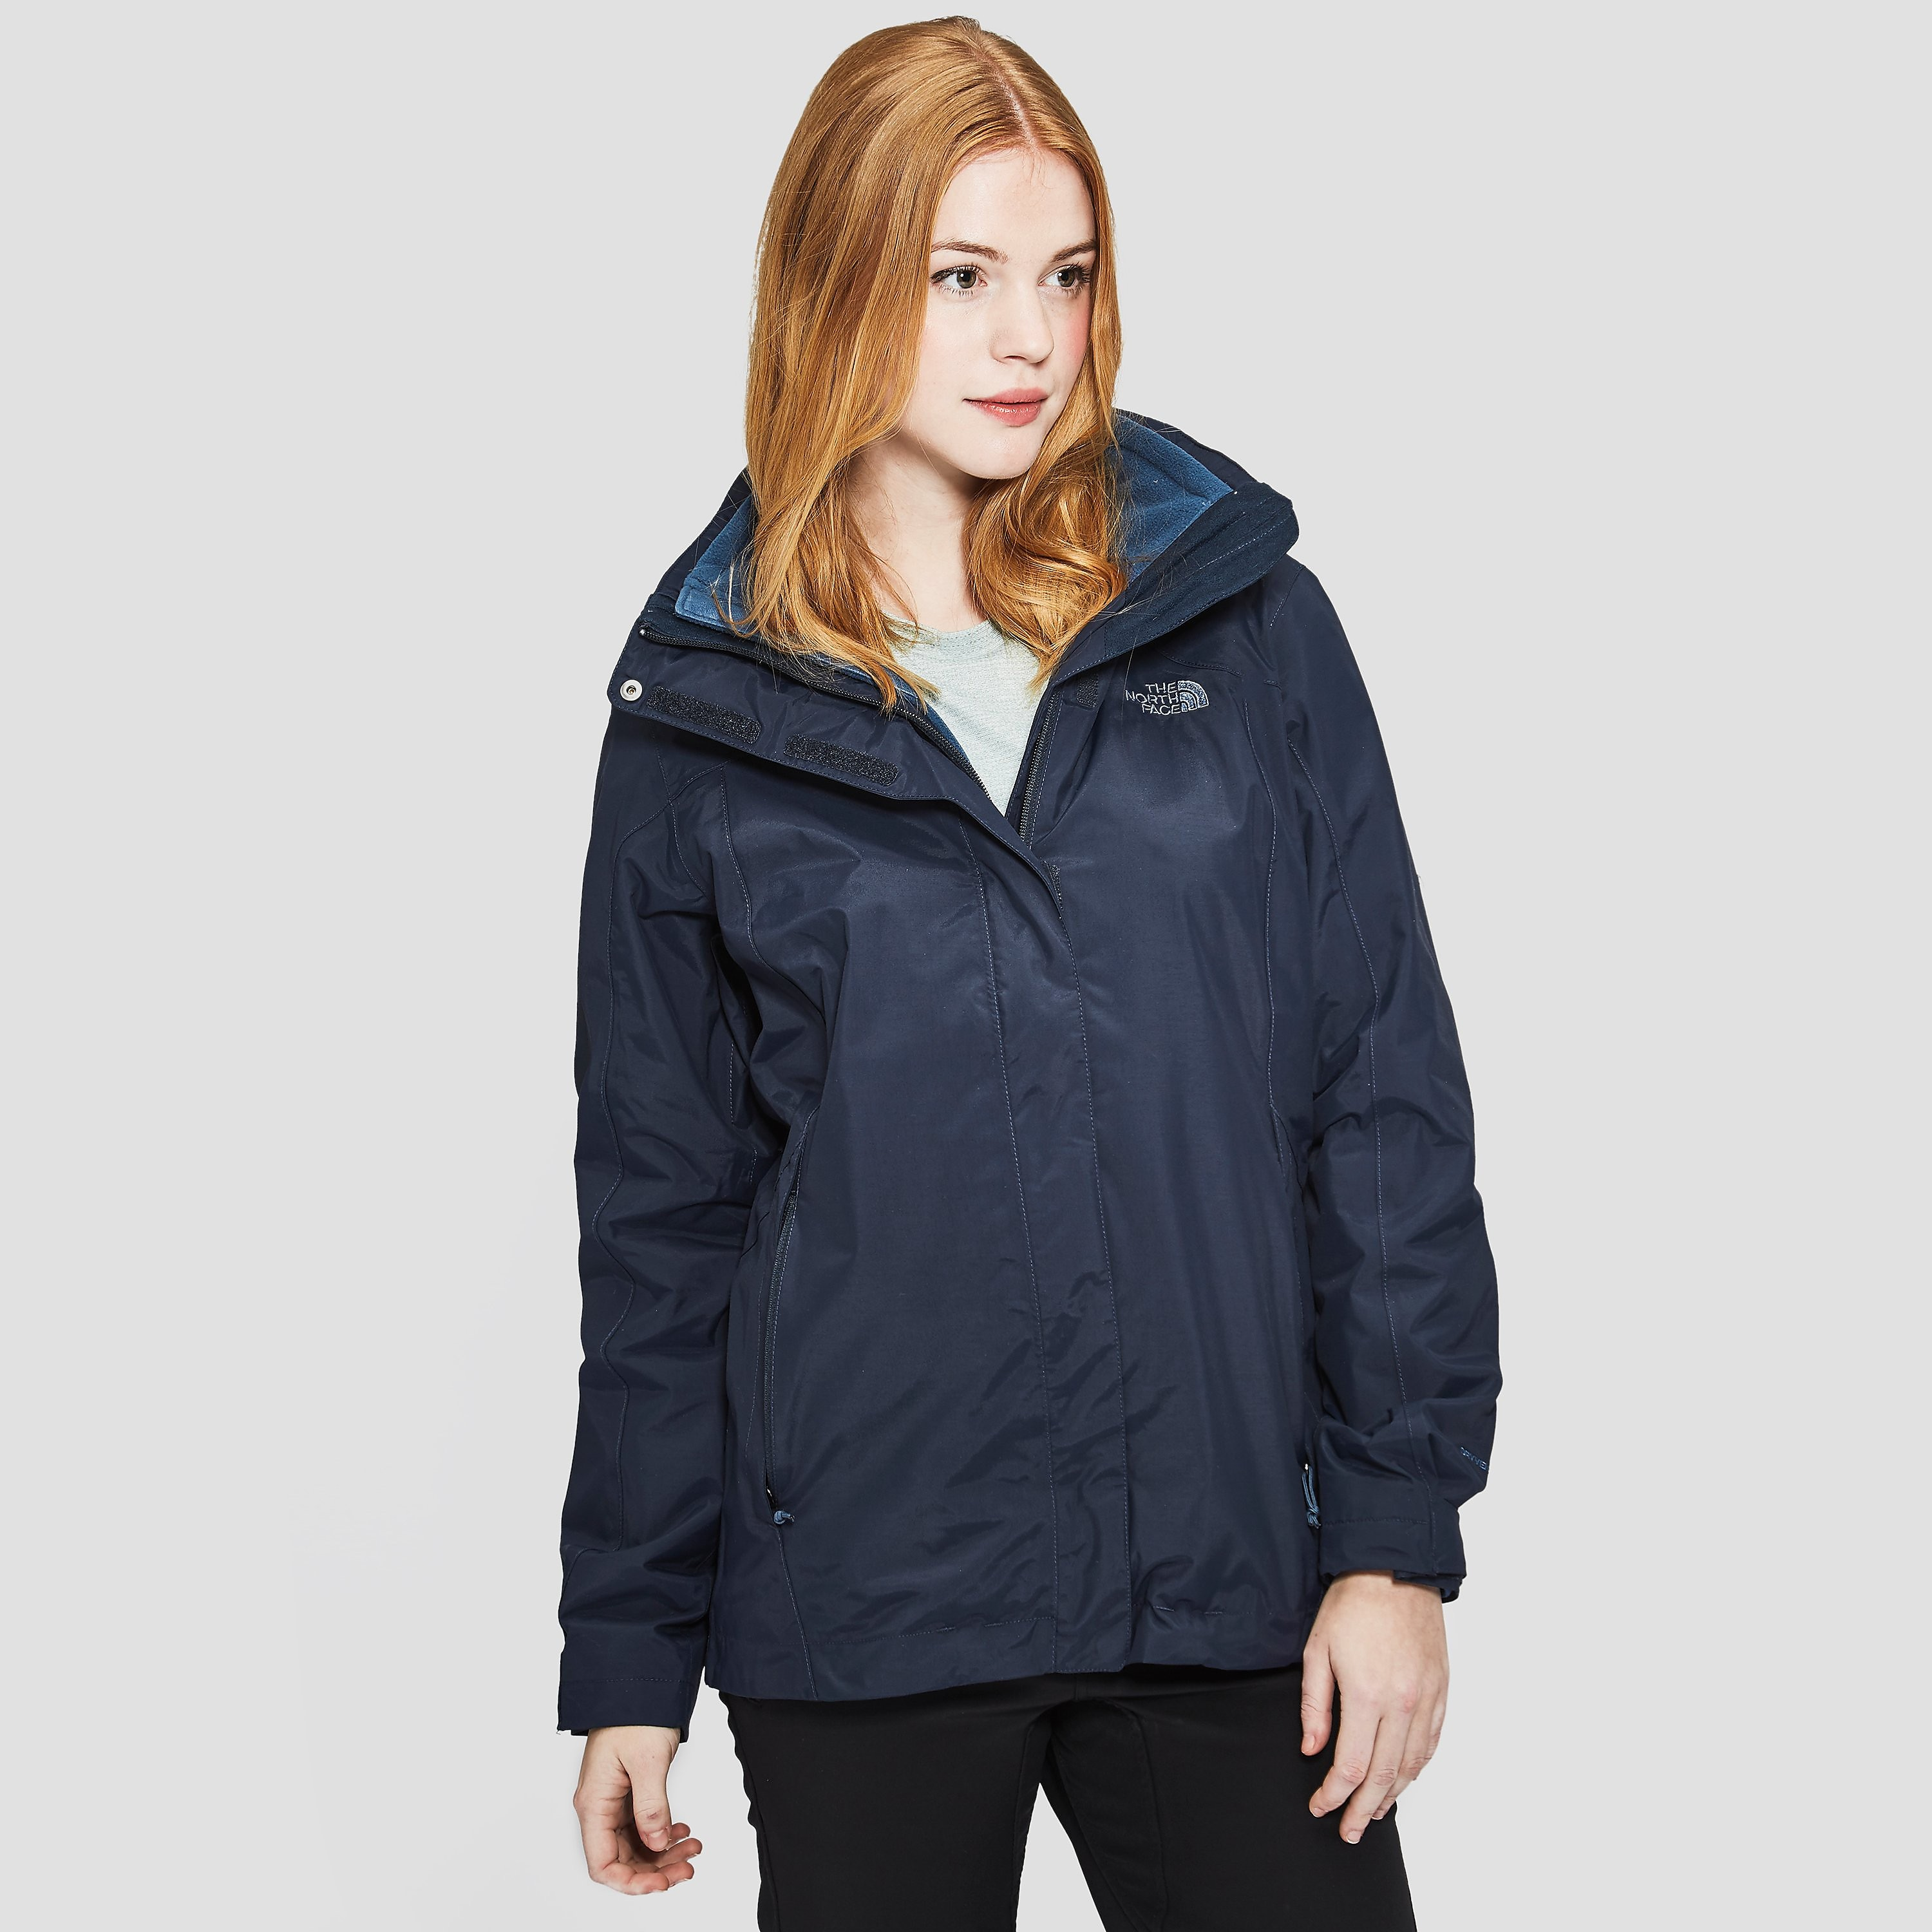 THE NORTH FACE EVOLUTION II TRICLIMATE-JAS